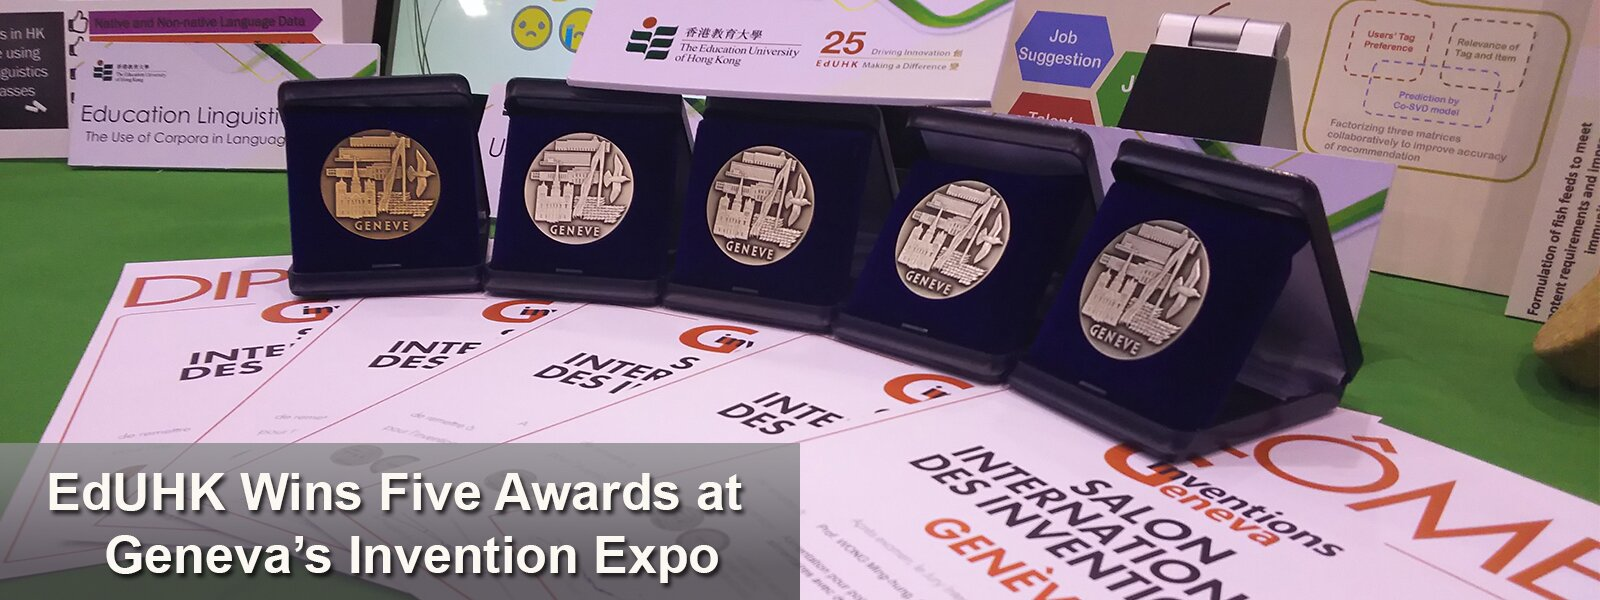 EdUHK Wins Five Awards at the Geneva's Invention Expo